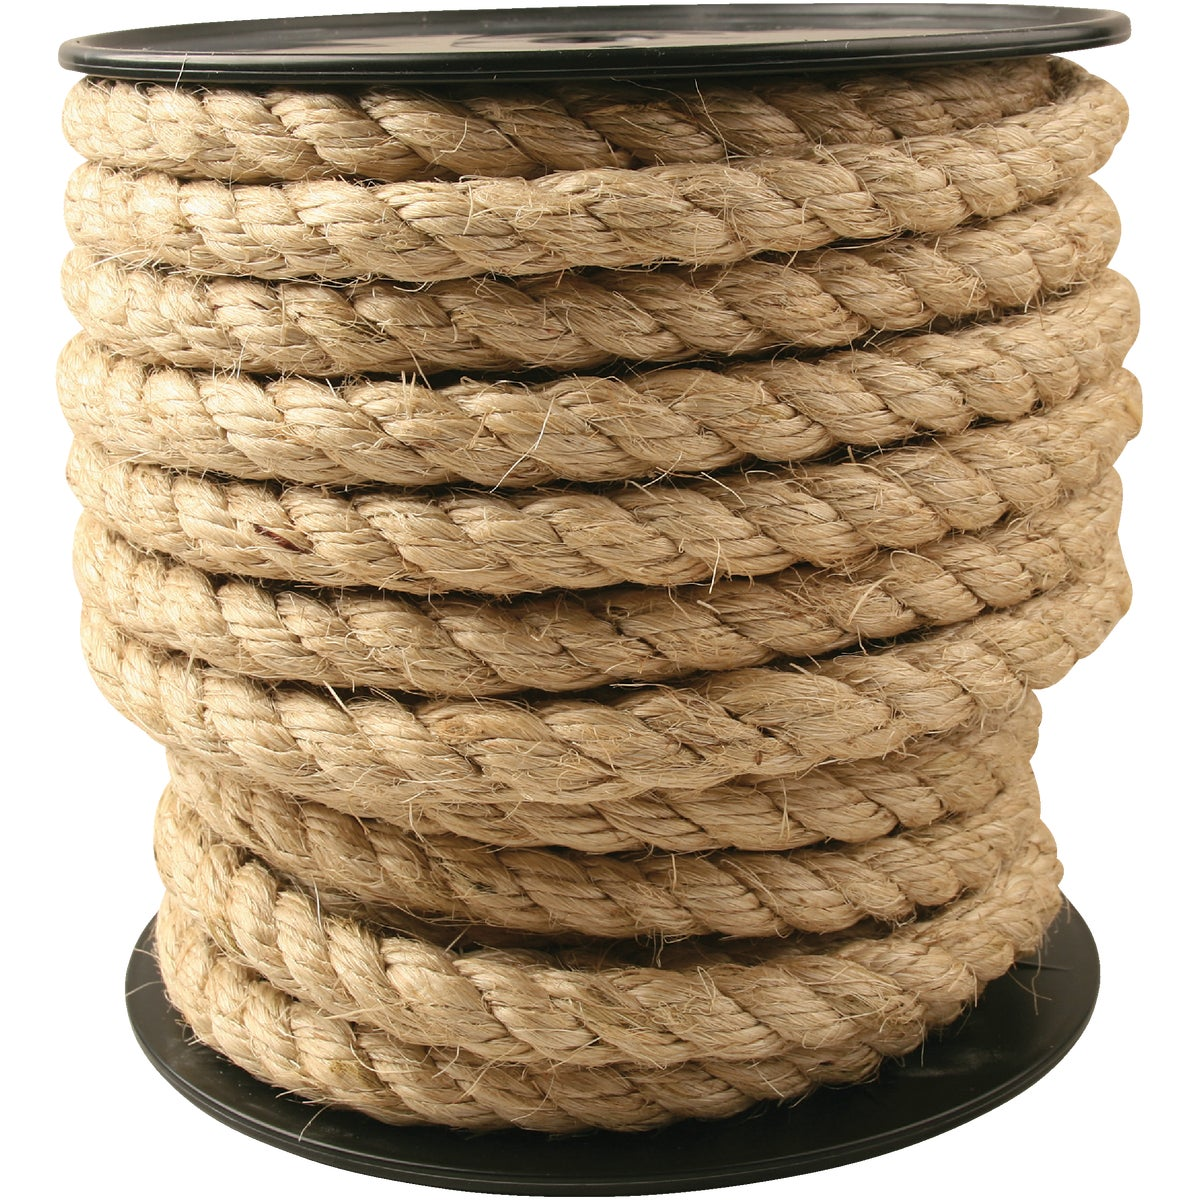 "3/4""X150'TWST SISAL ROPE - 748249 by Do it Best"